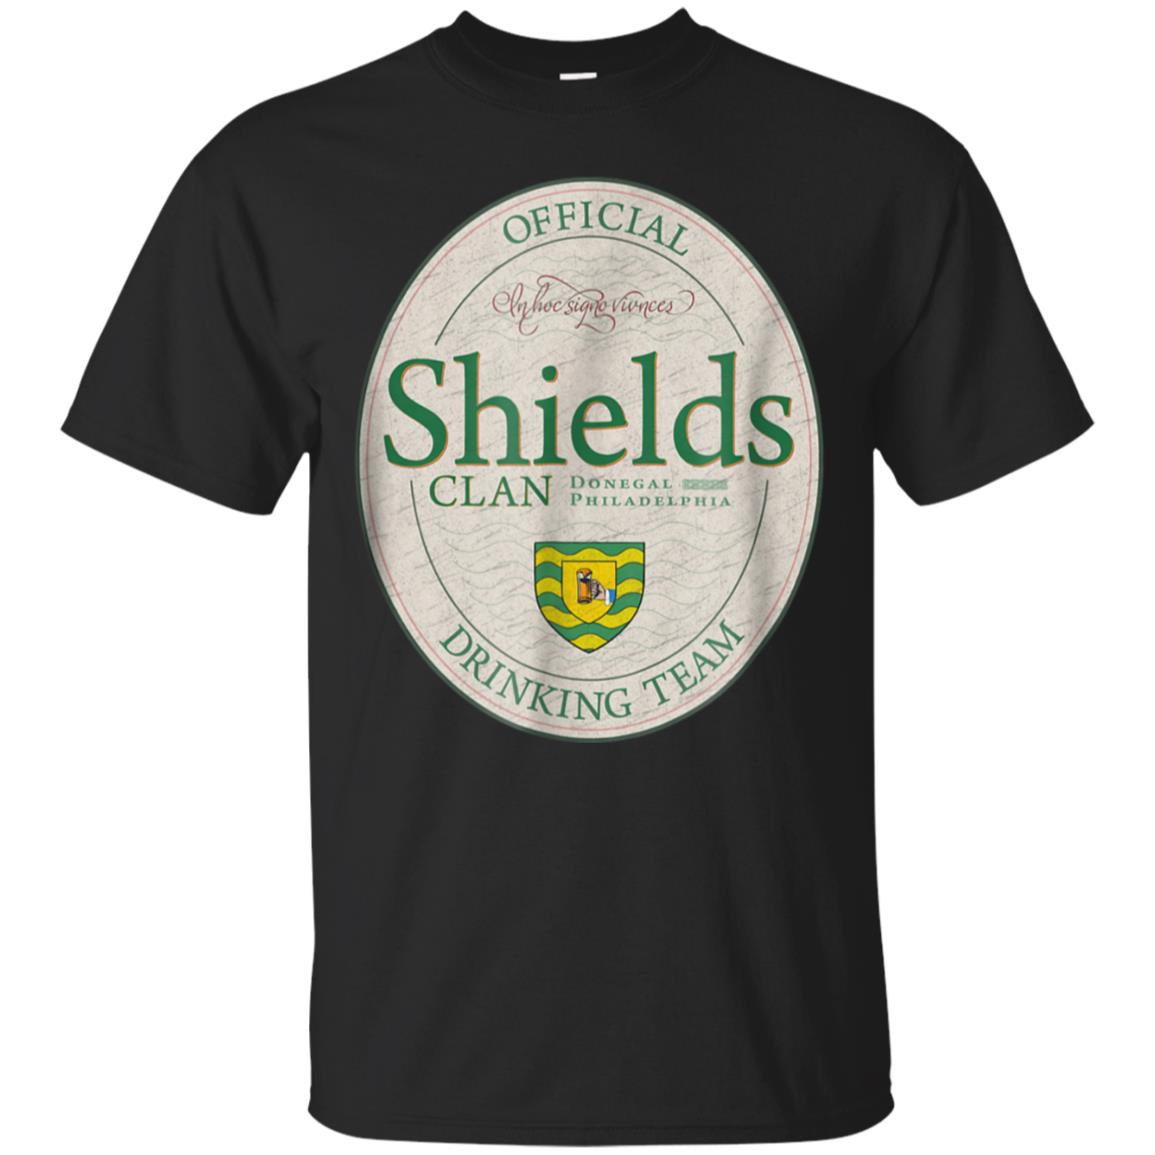 Shields Clan T-Shirt Official Drinking Team 99promocode